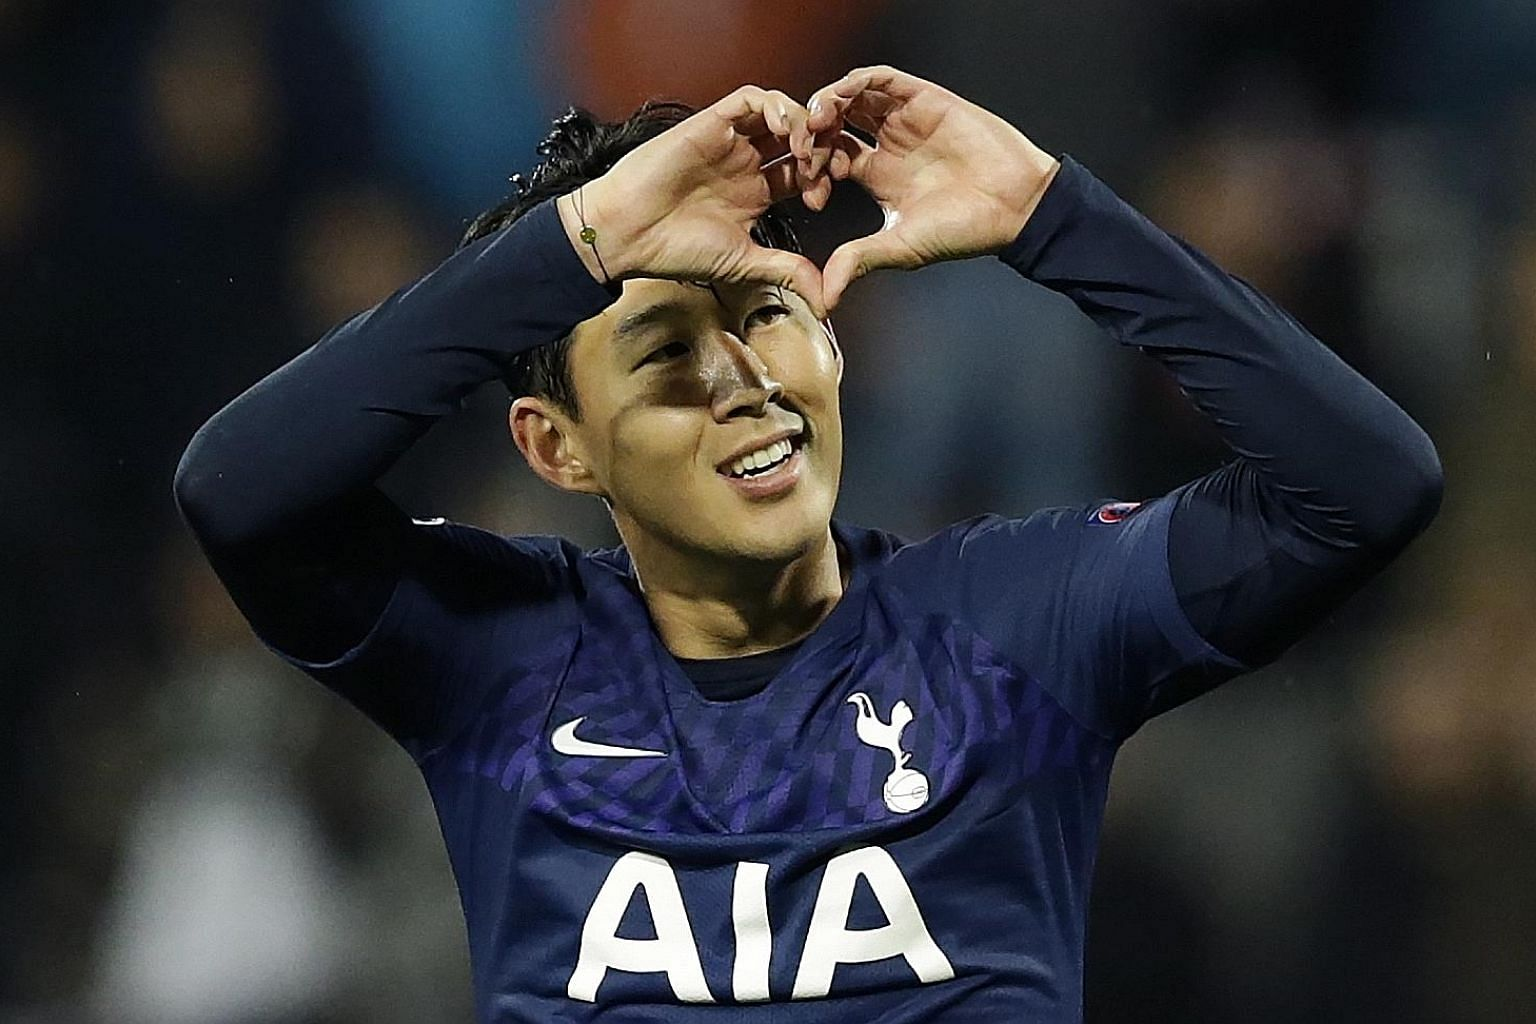 Son Heung-min gesturing to fans after scoring against Red Star in a 4-0 win. He is picking himself up after his role in Andre Gomes' injury. PHOTO: EPA-EFE